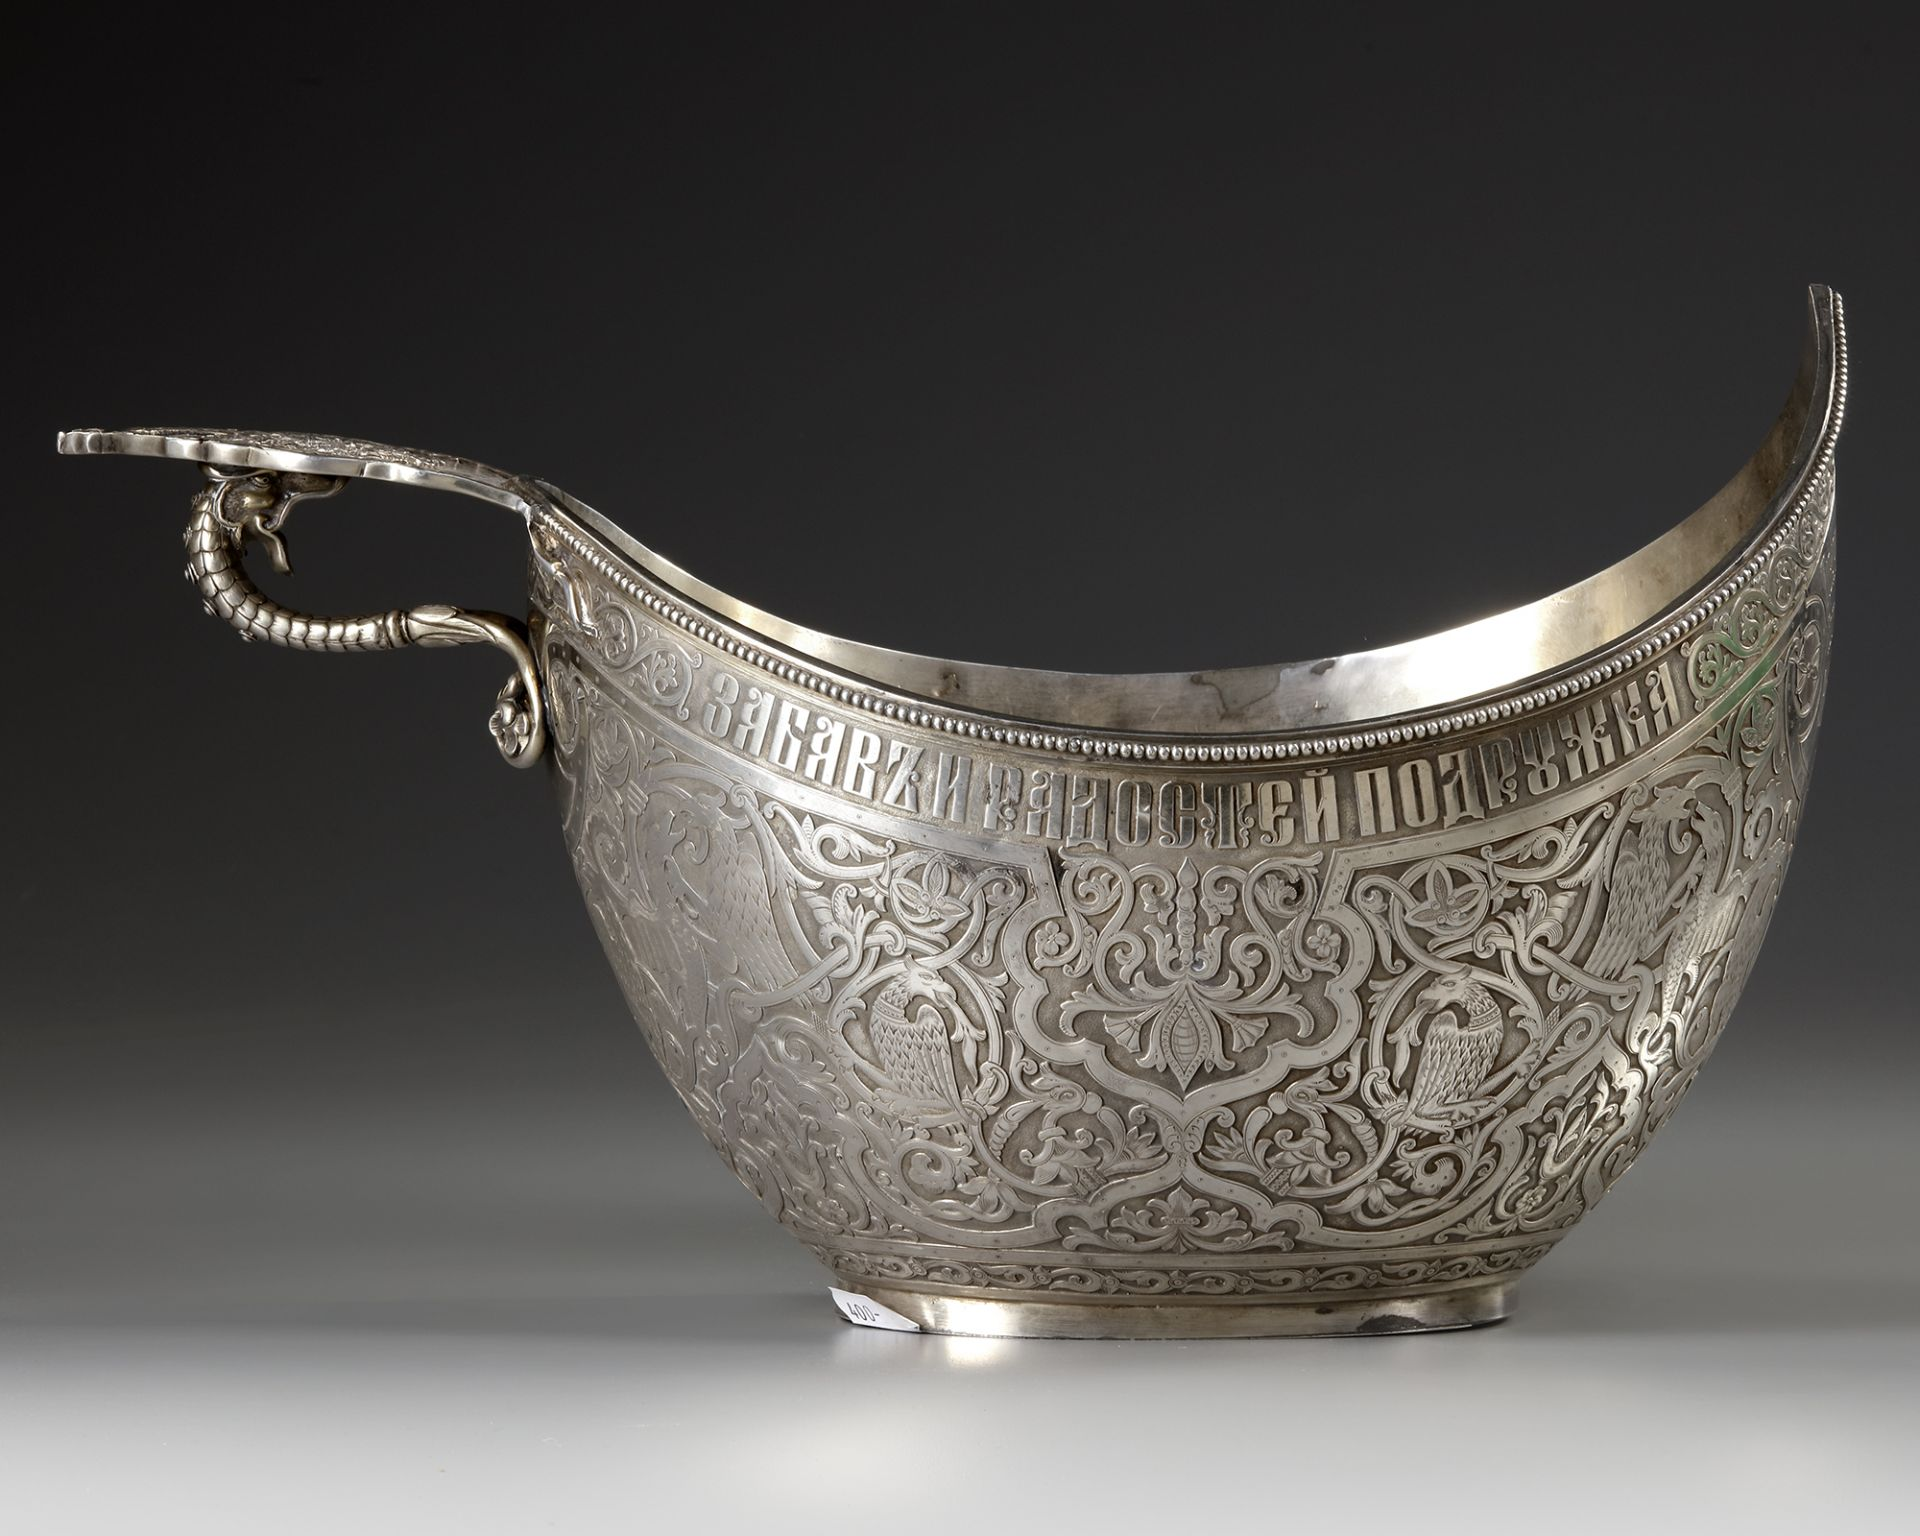 A LARGE RUSSIAN IMPERIAL SILVER KOVSCH BOWL, LATE 19TH CENTURY - Image 5 of 8